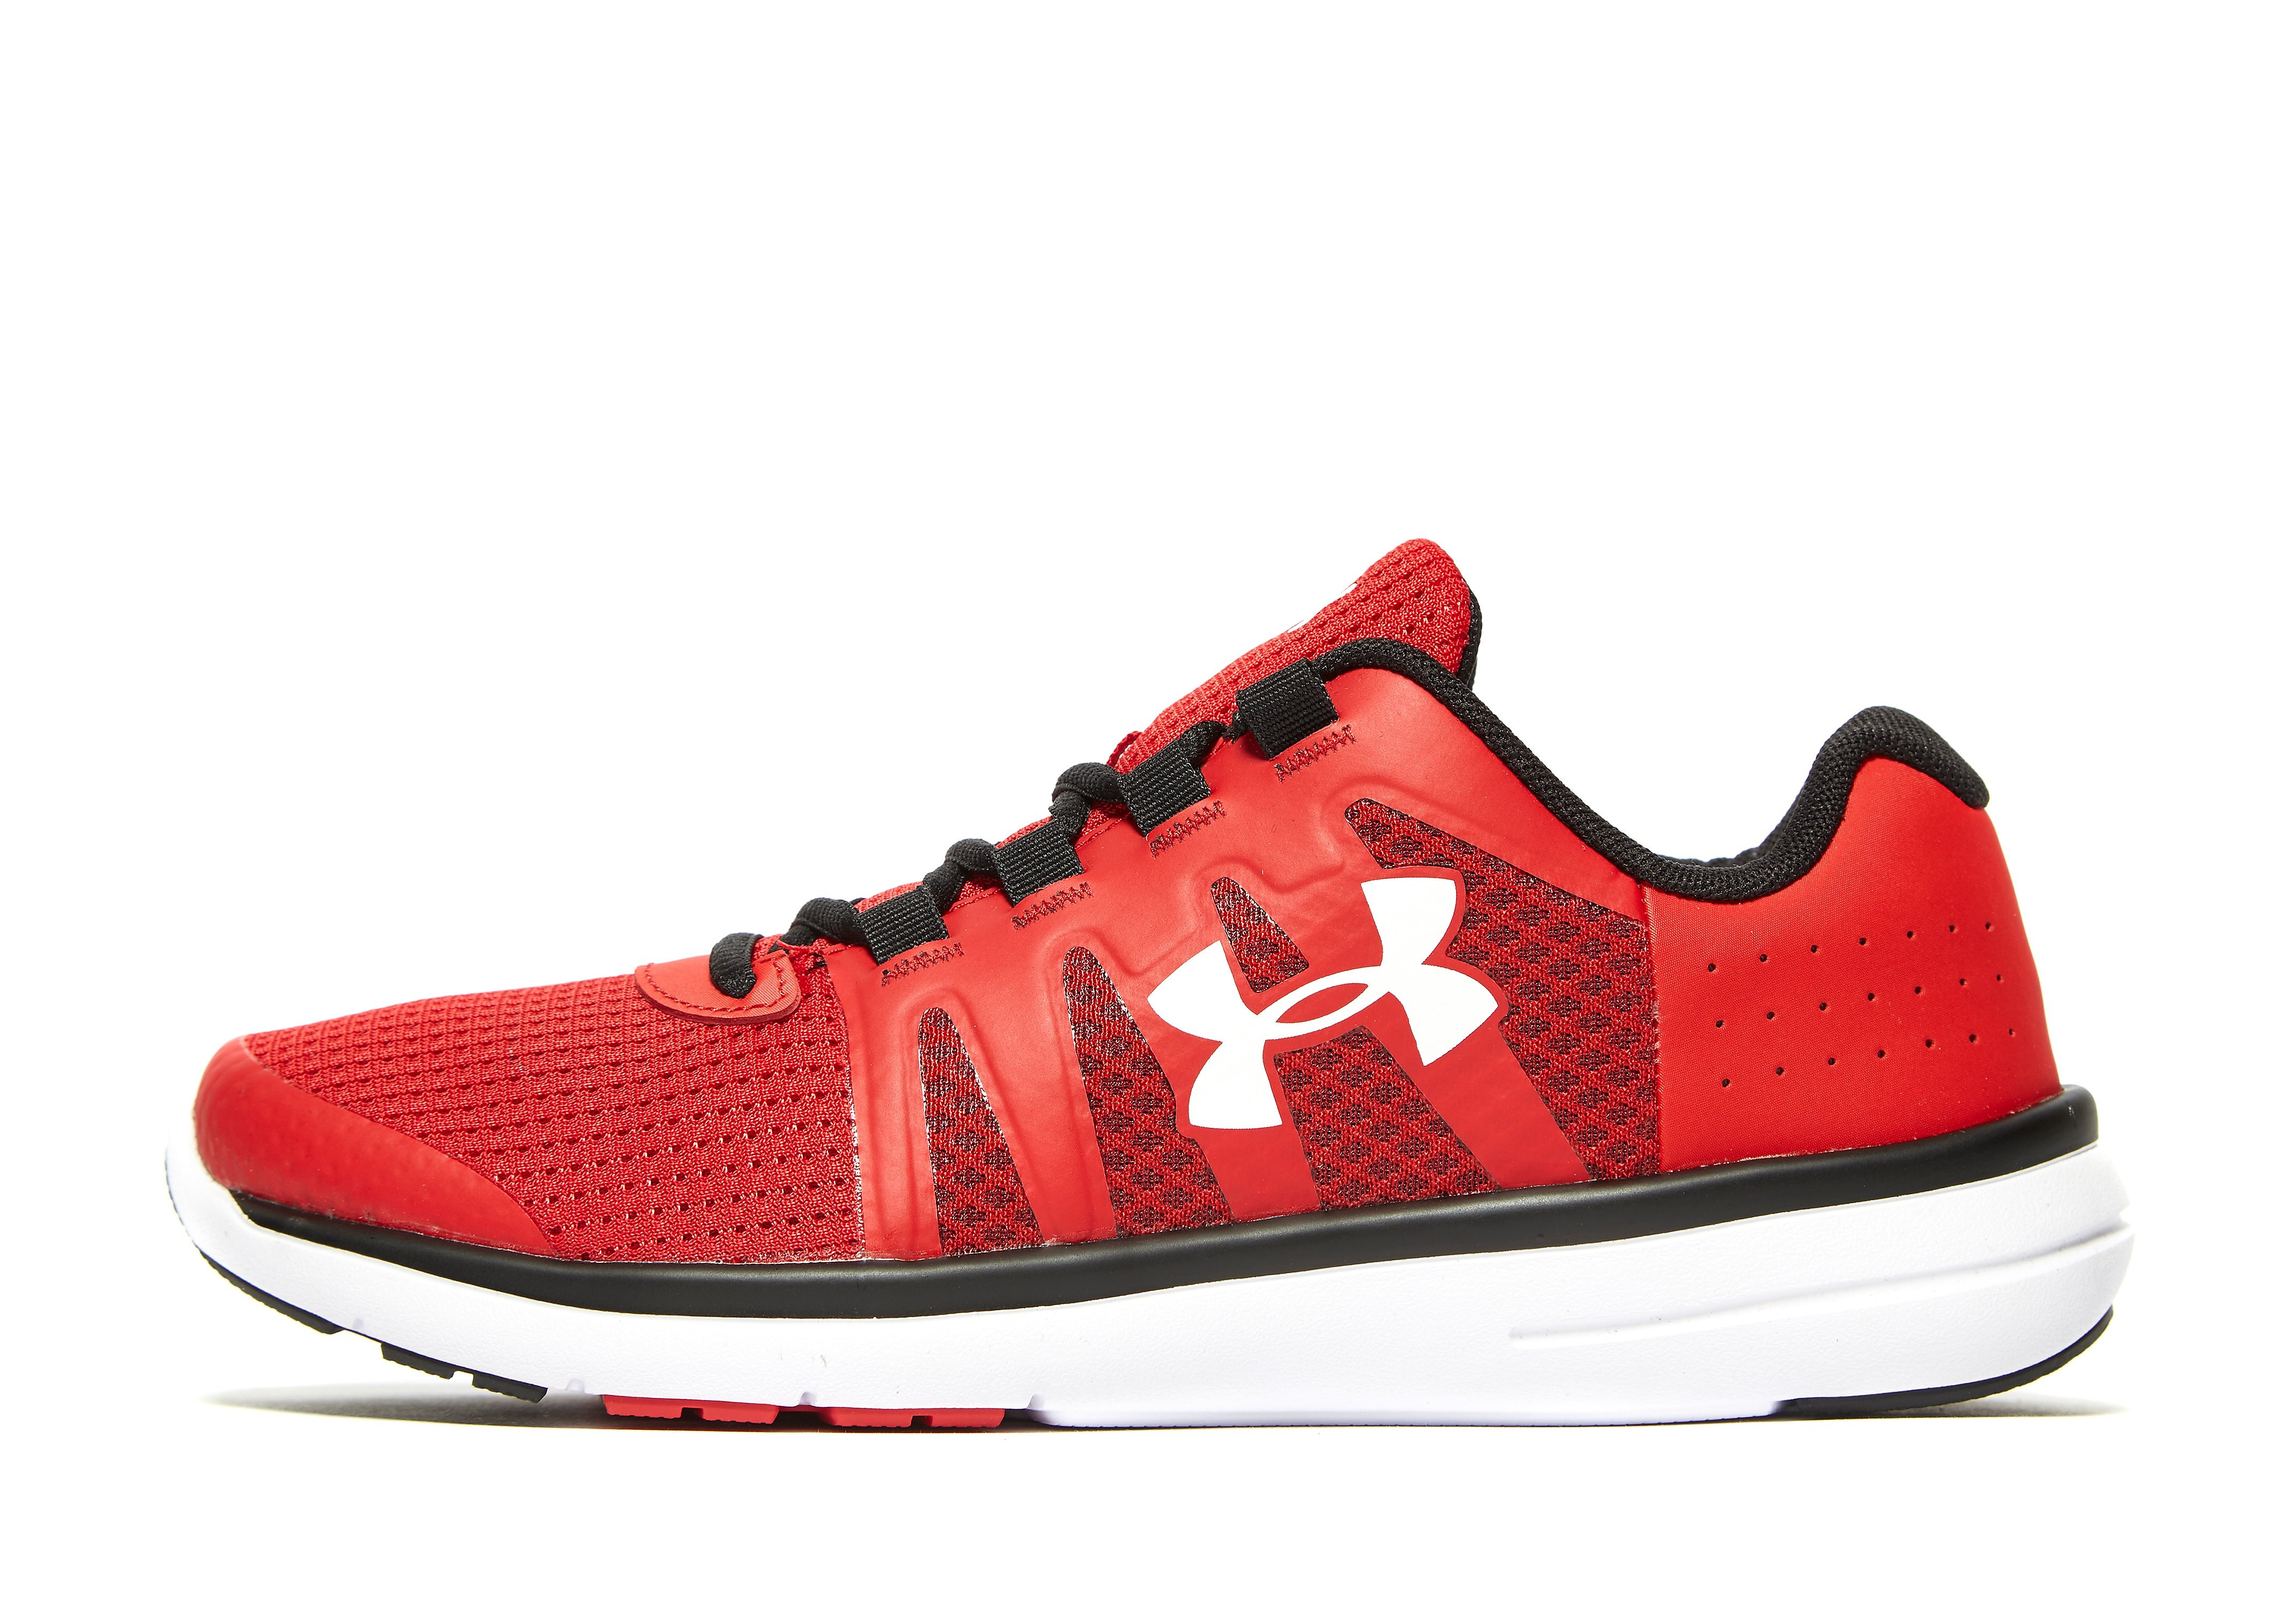 Under Armour Micro Fuel Junior